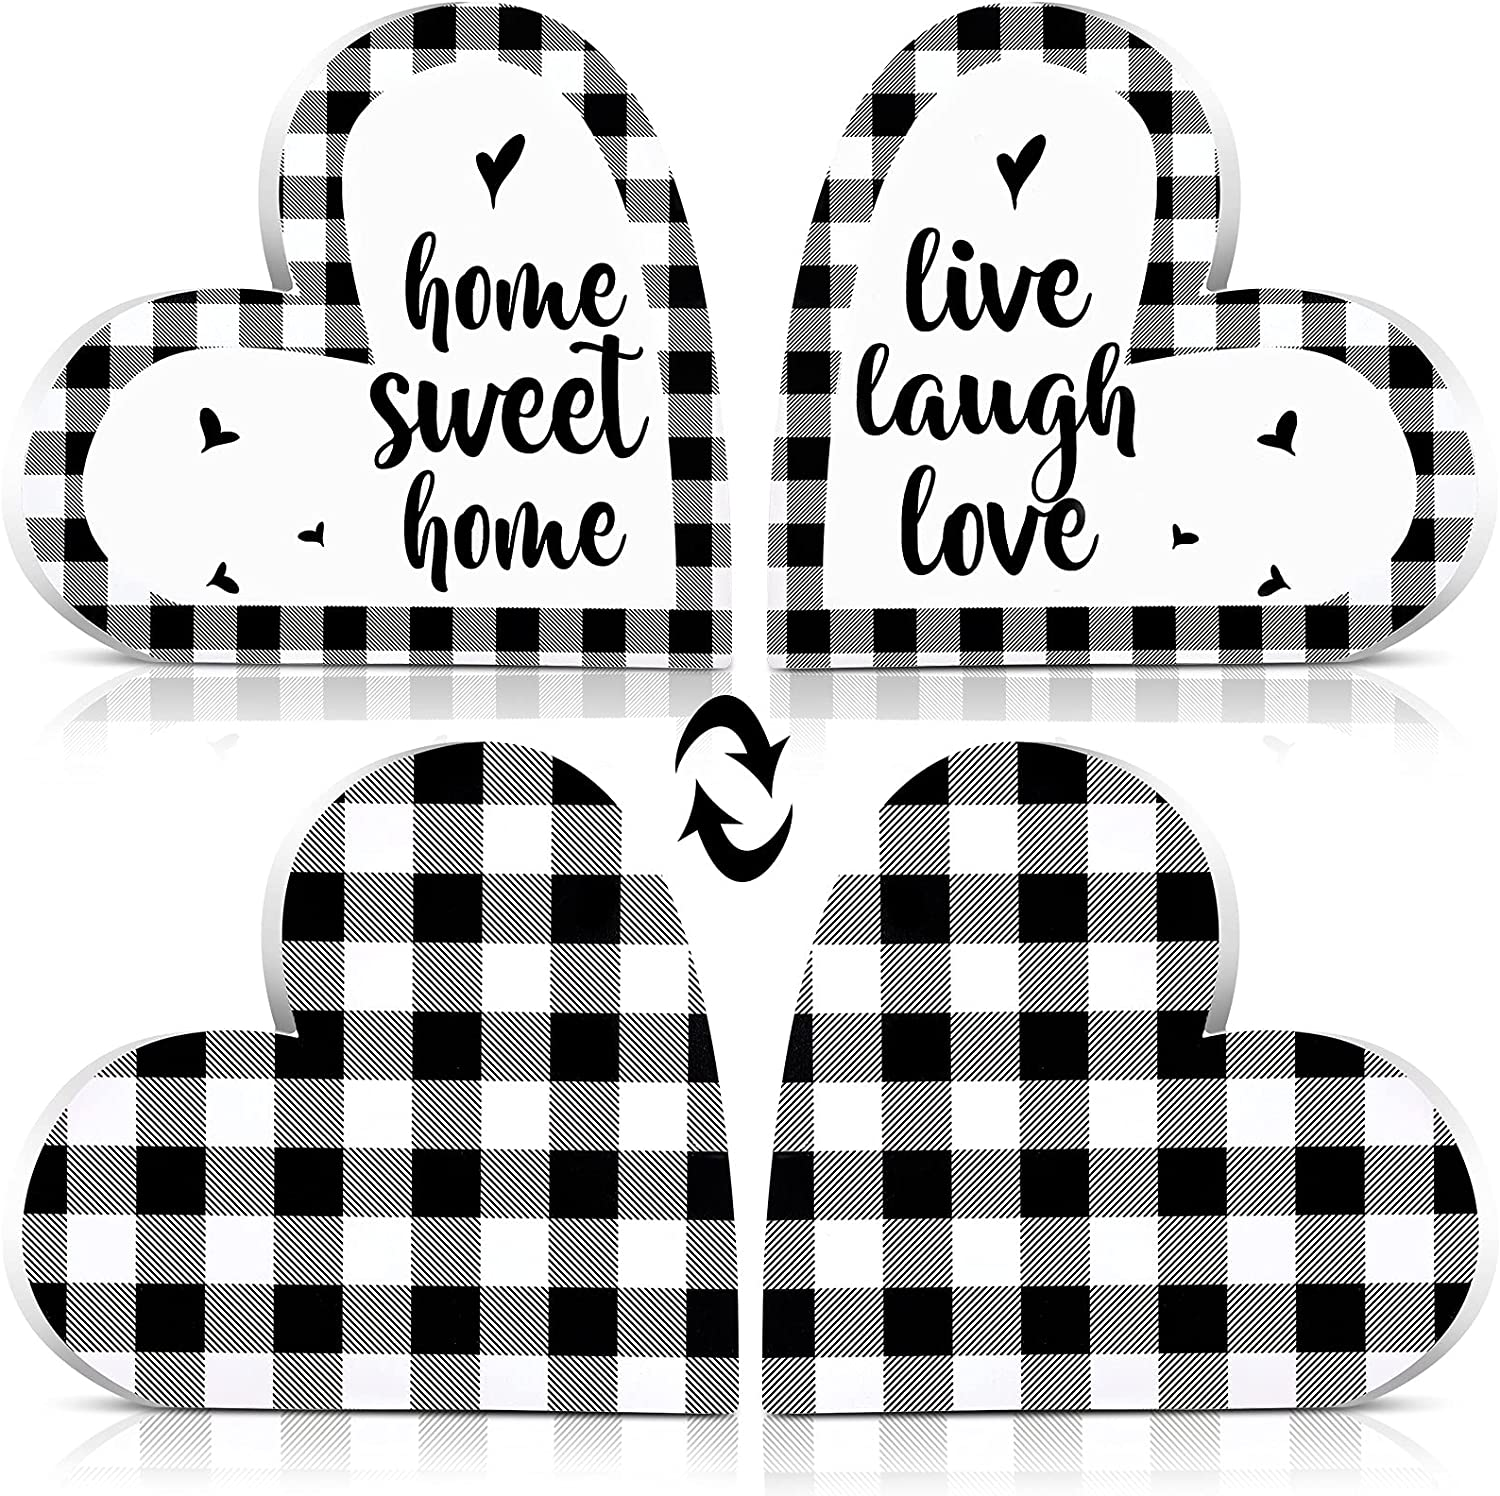 Jetec 2 Pieces Heart-Shaped Wooden Sign Double-Sided Home Sweet Home Sign Live Laugh Love Sign Farmhouse Buffalo Plaid Decor for Holiday Home Table Coffee Bar Room Shelf Decor